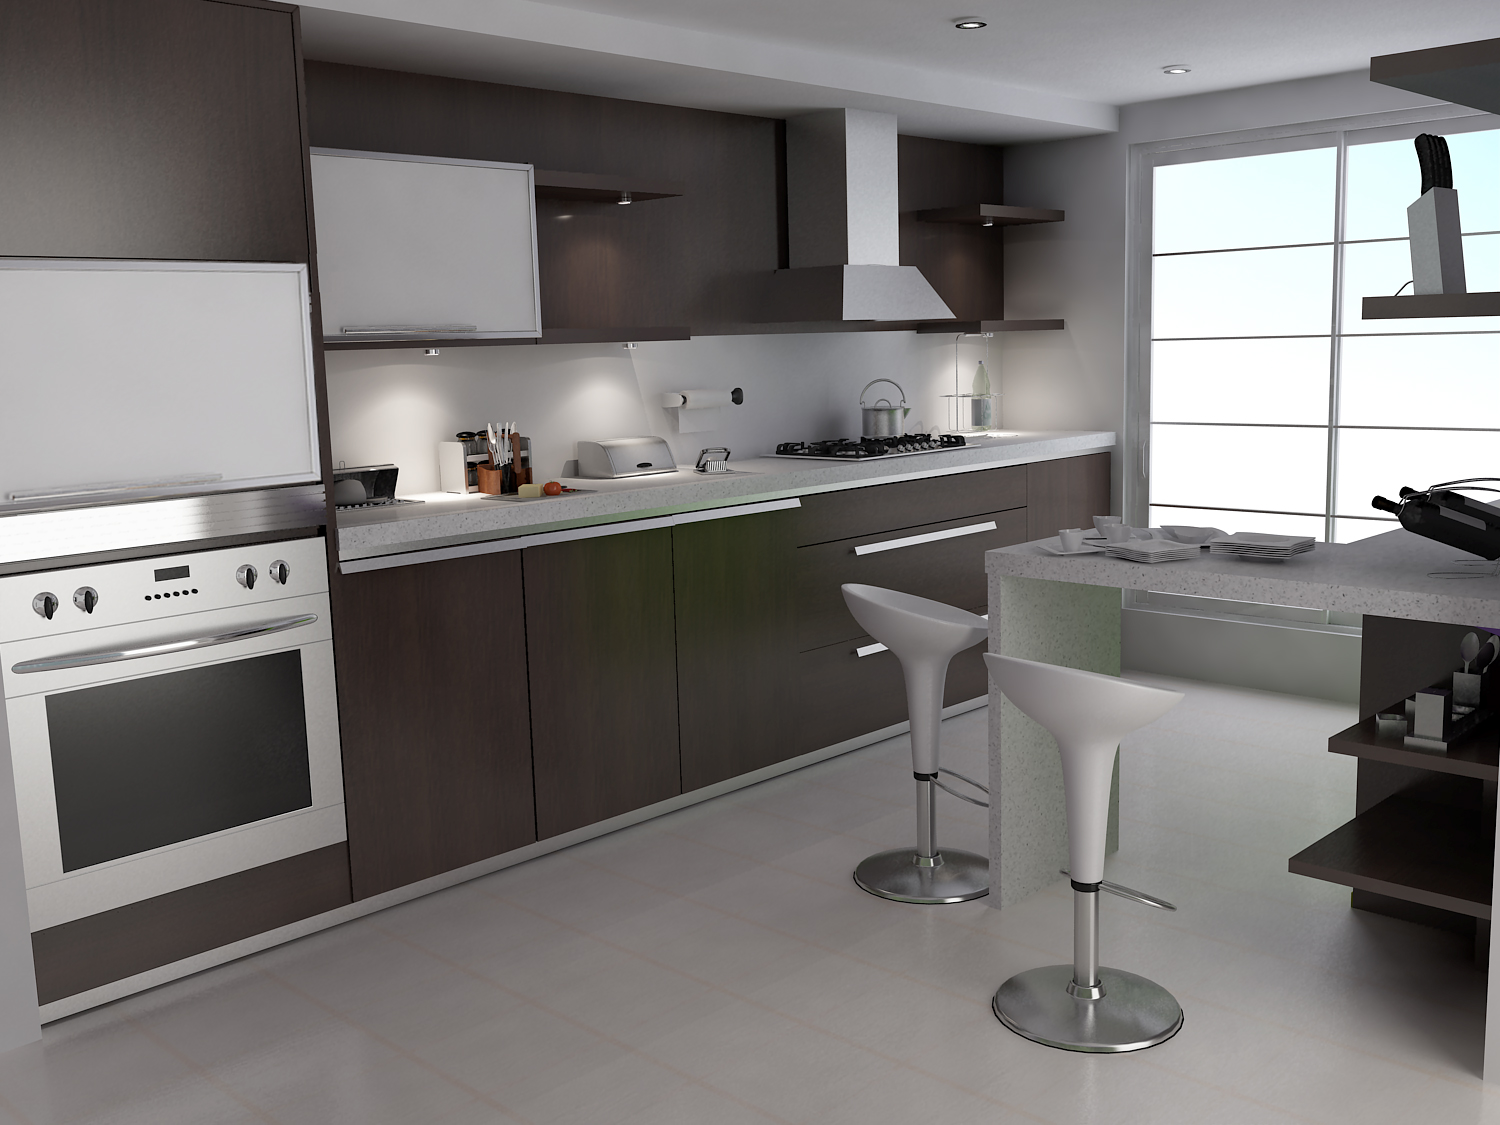 Design Kitchen Set Minimalis Modern Best Modern Furniture Design Kitchen Set Minimalis